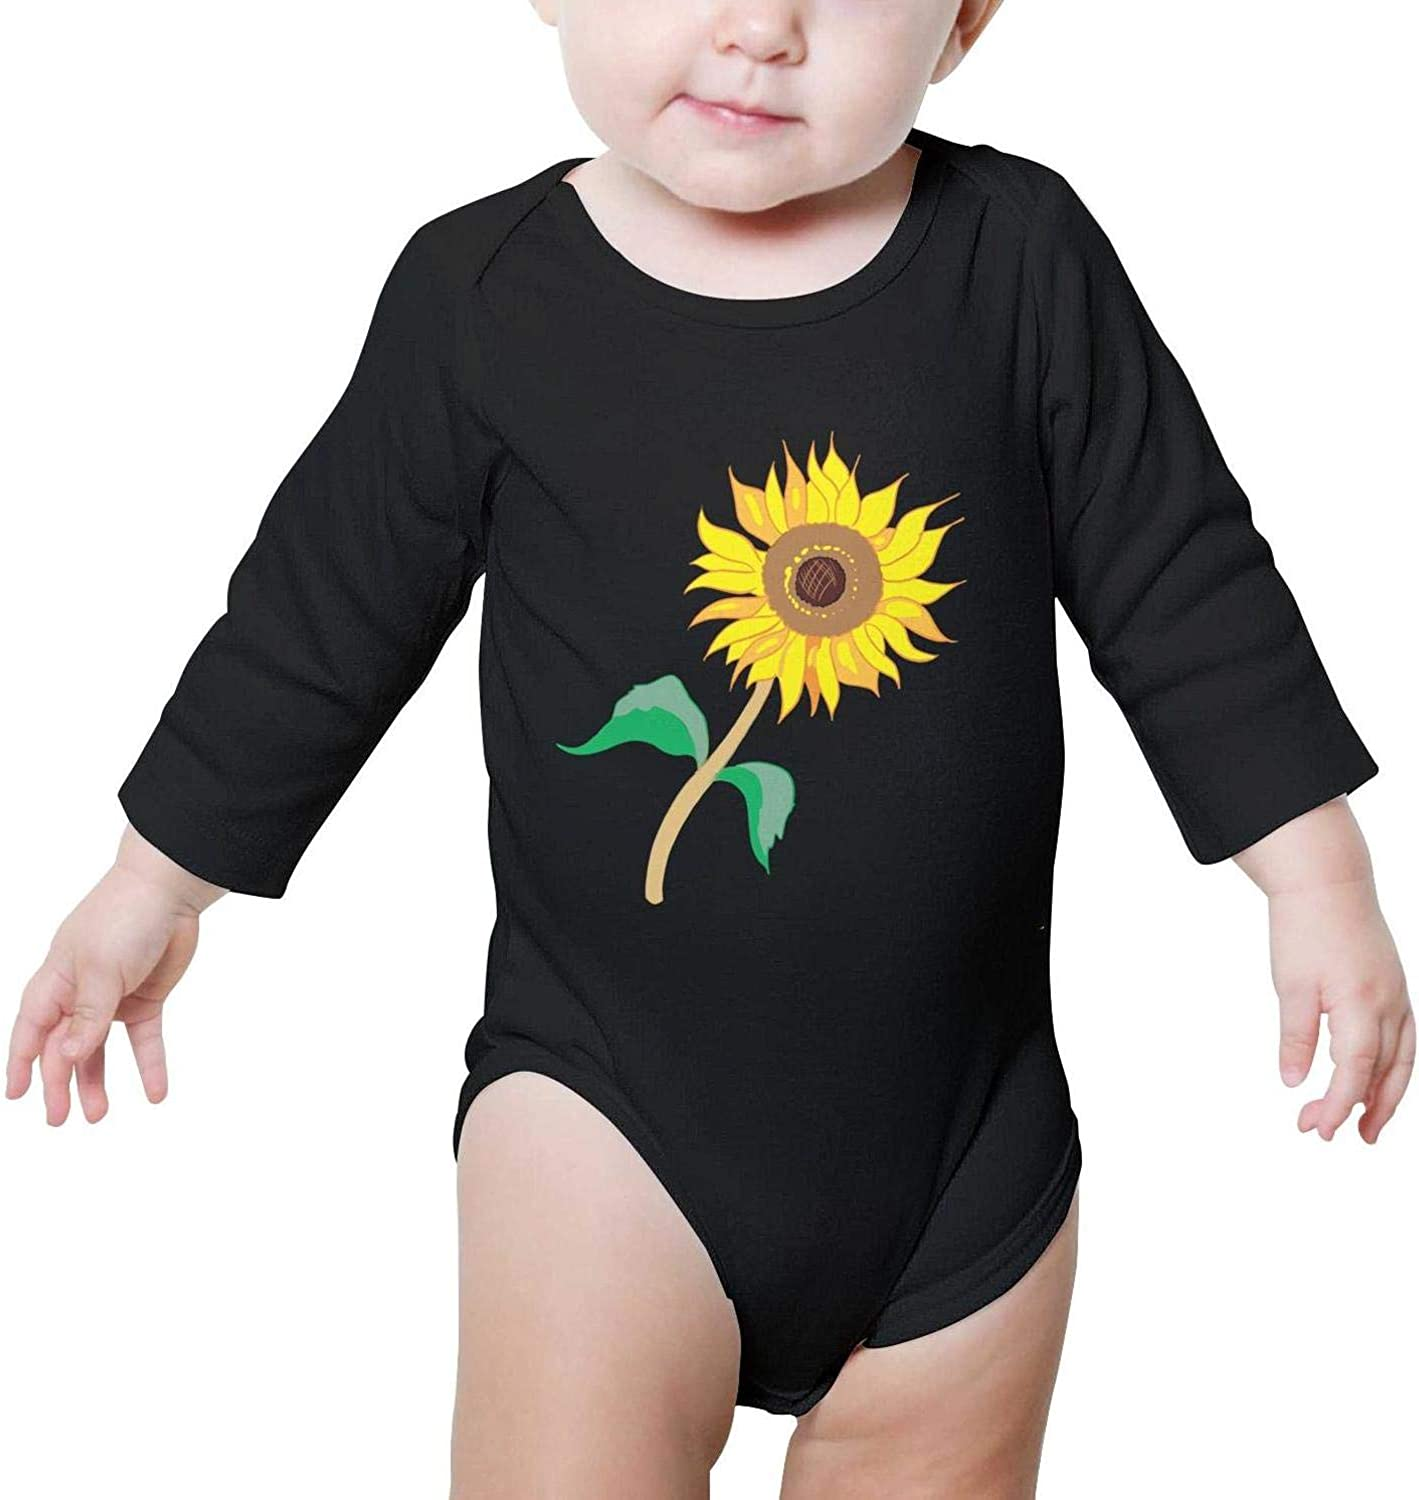 XMBUY Cartoon Cute Sunflower Romper Outfits Organic Cotton Personalized Boys Girls Family Baby Onesie Long Sleeve